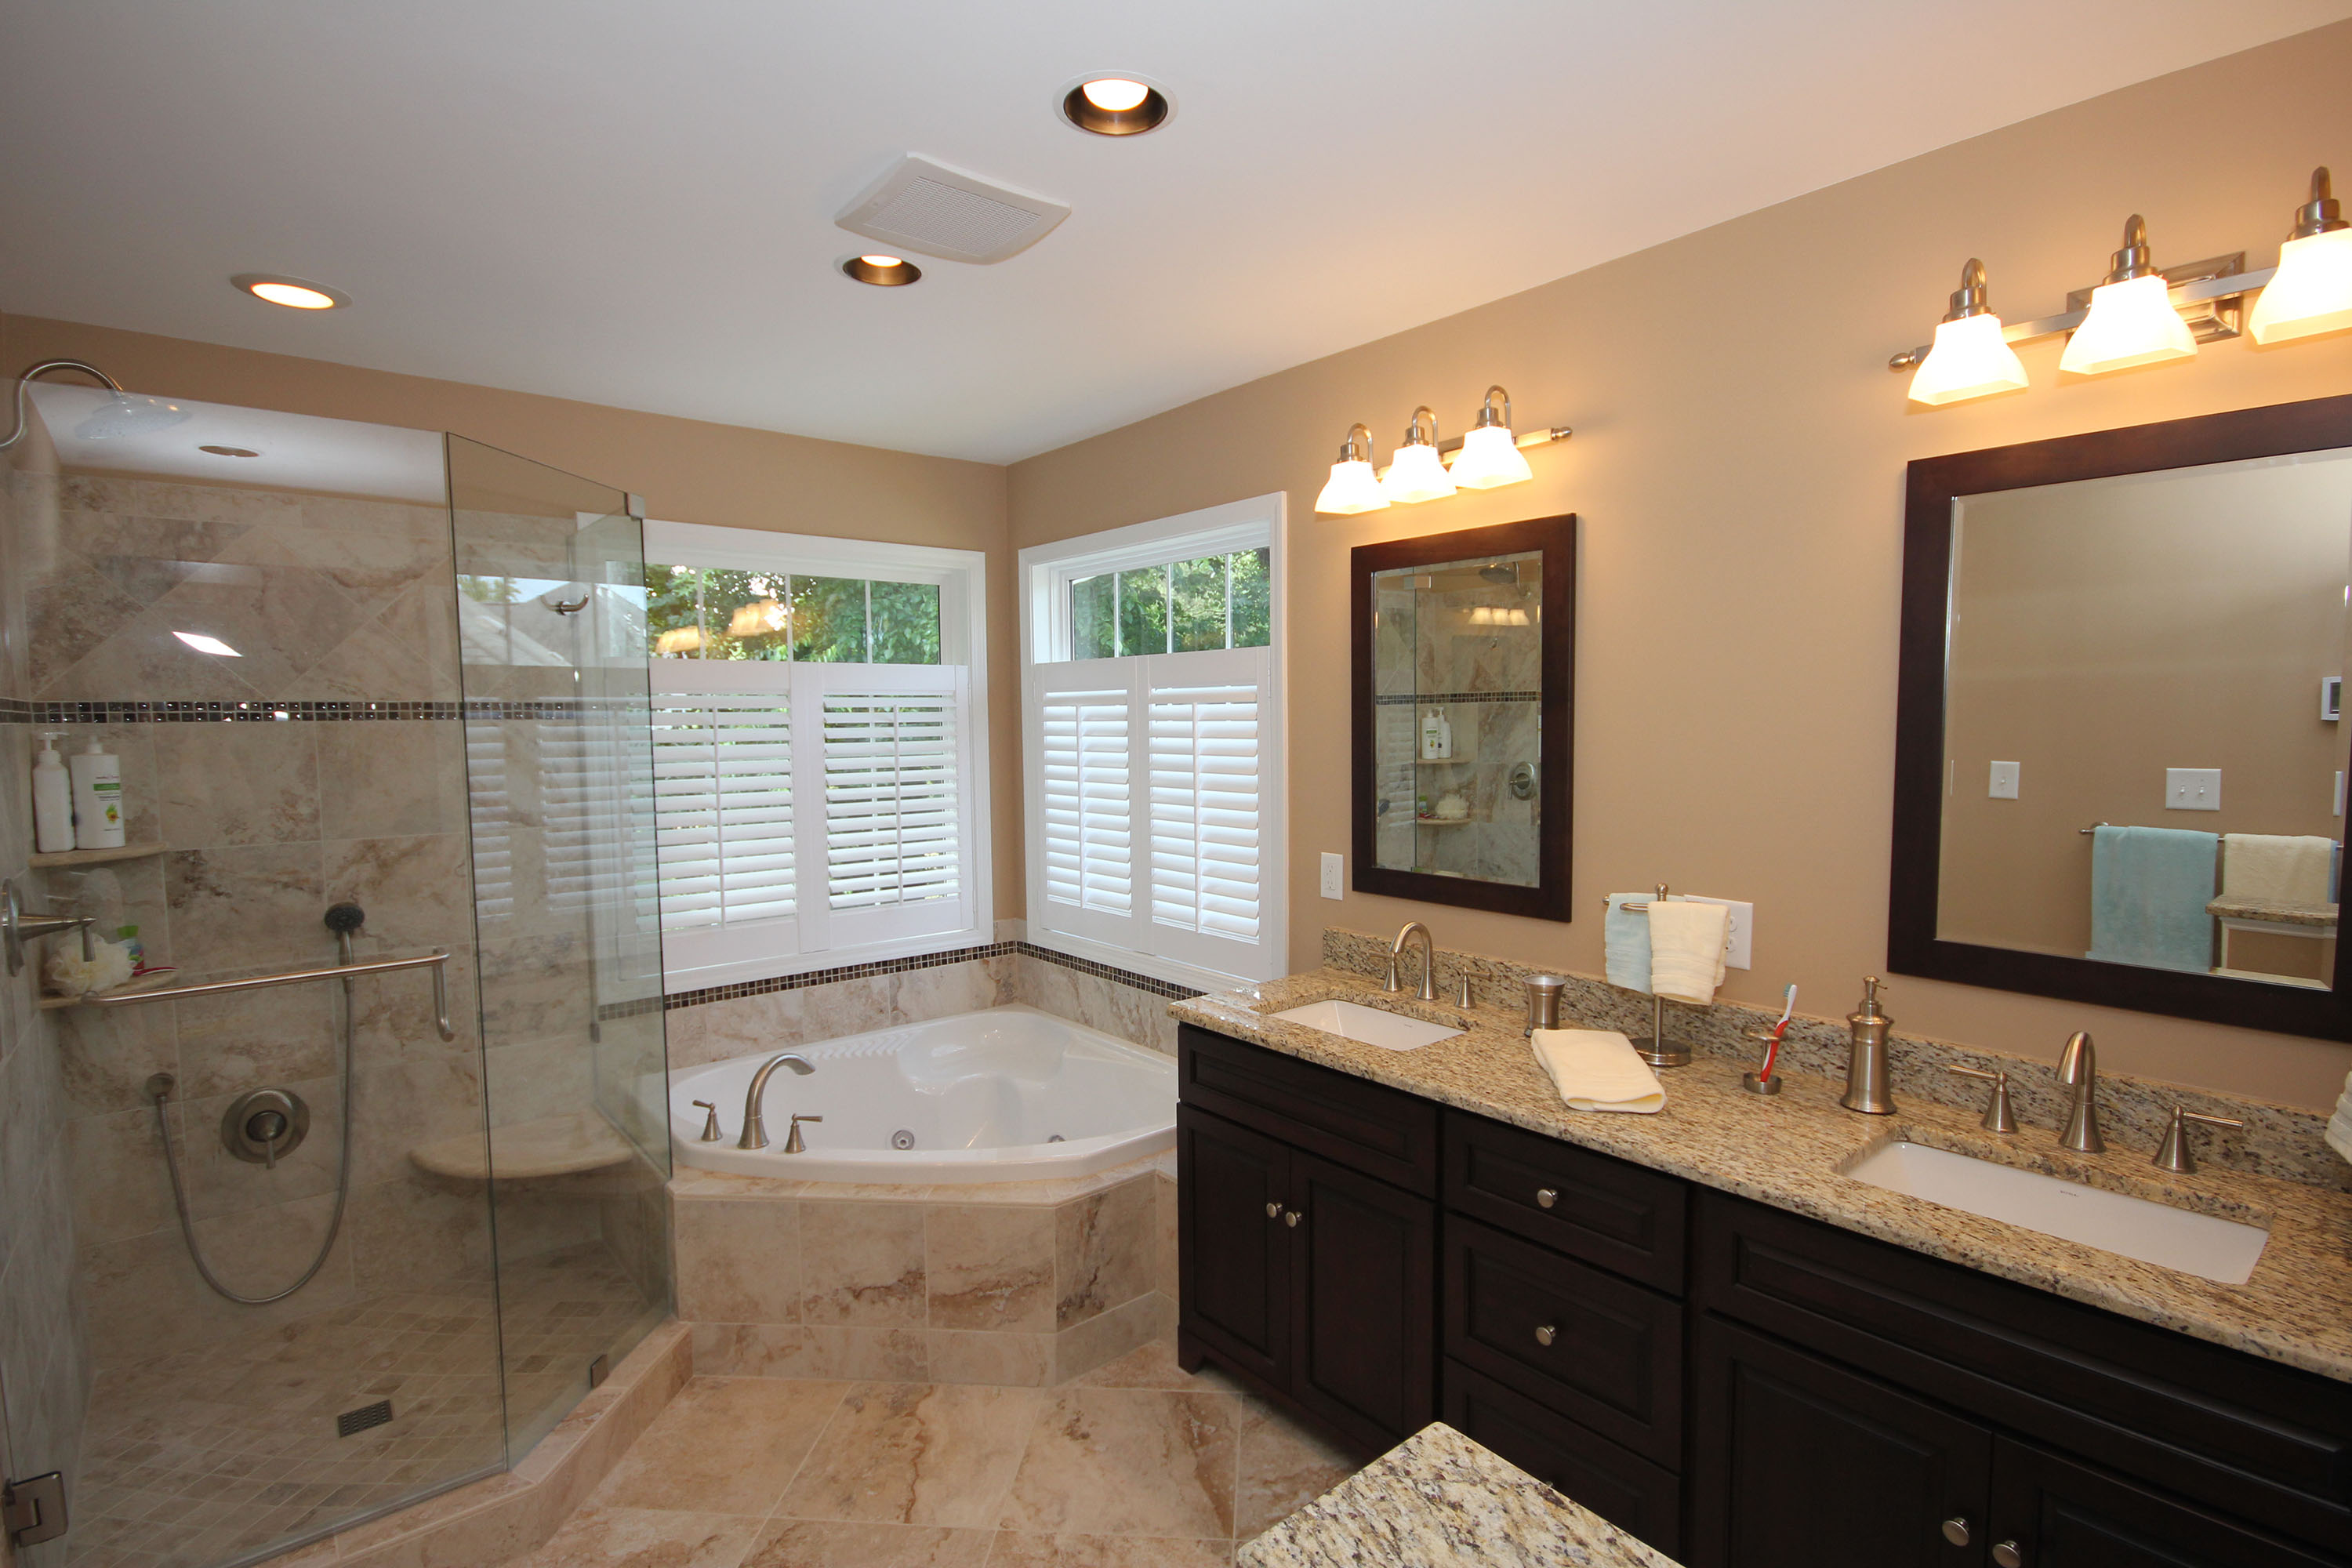 Bathroom Remodeling Raleigh Dark Bath Cabinetsthe Bath Remodeling Center Llc